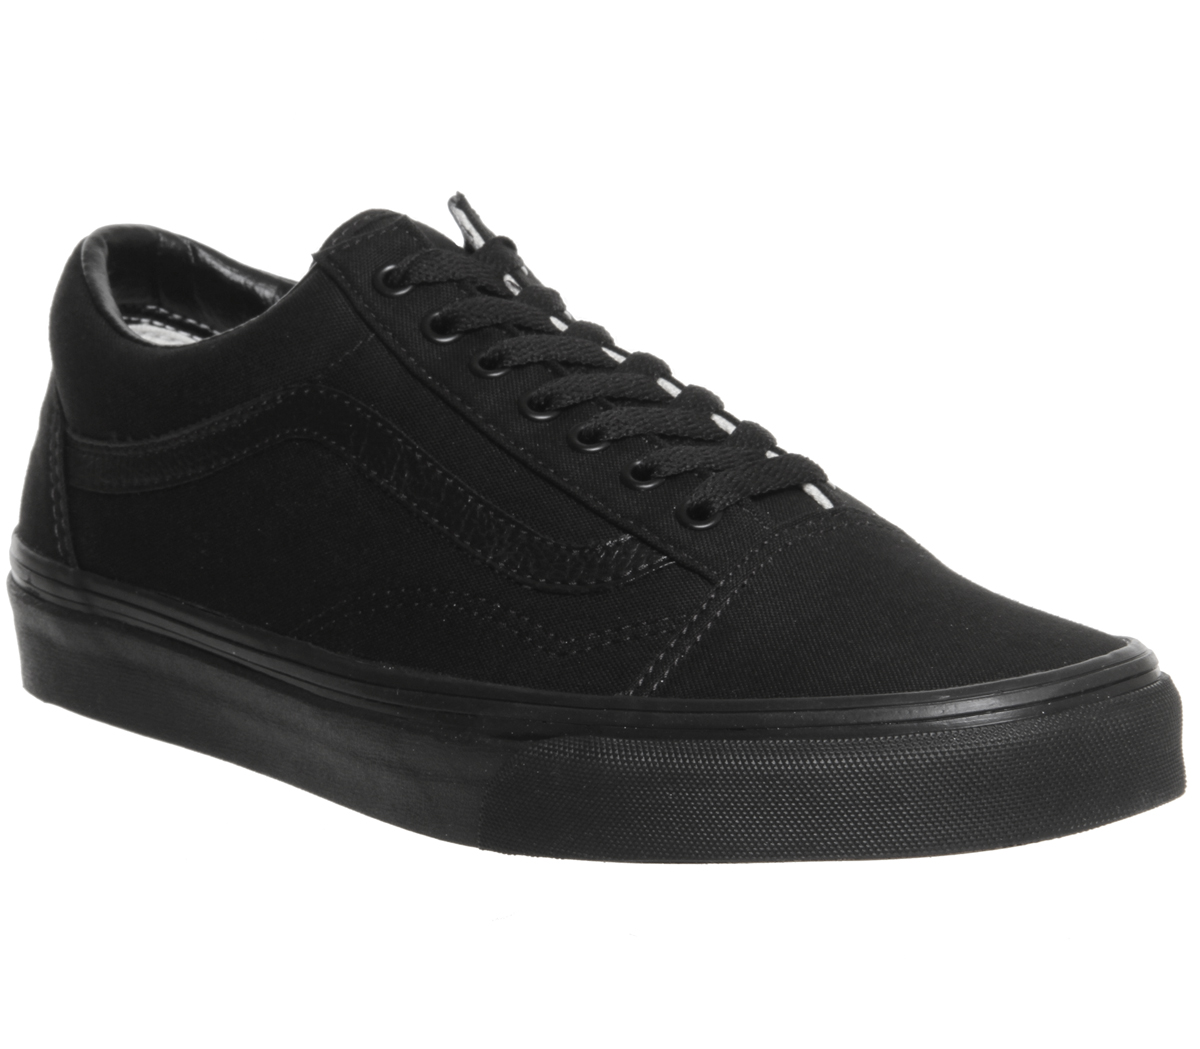 5a021419ff Sentinel Mens Vans Old Skool Trainers Black Trainers Shoes